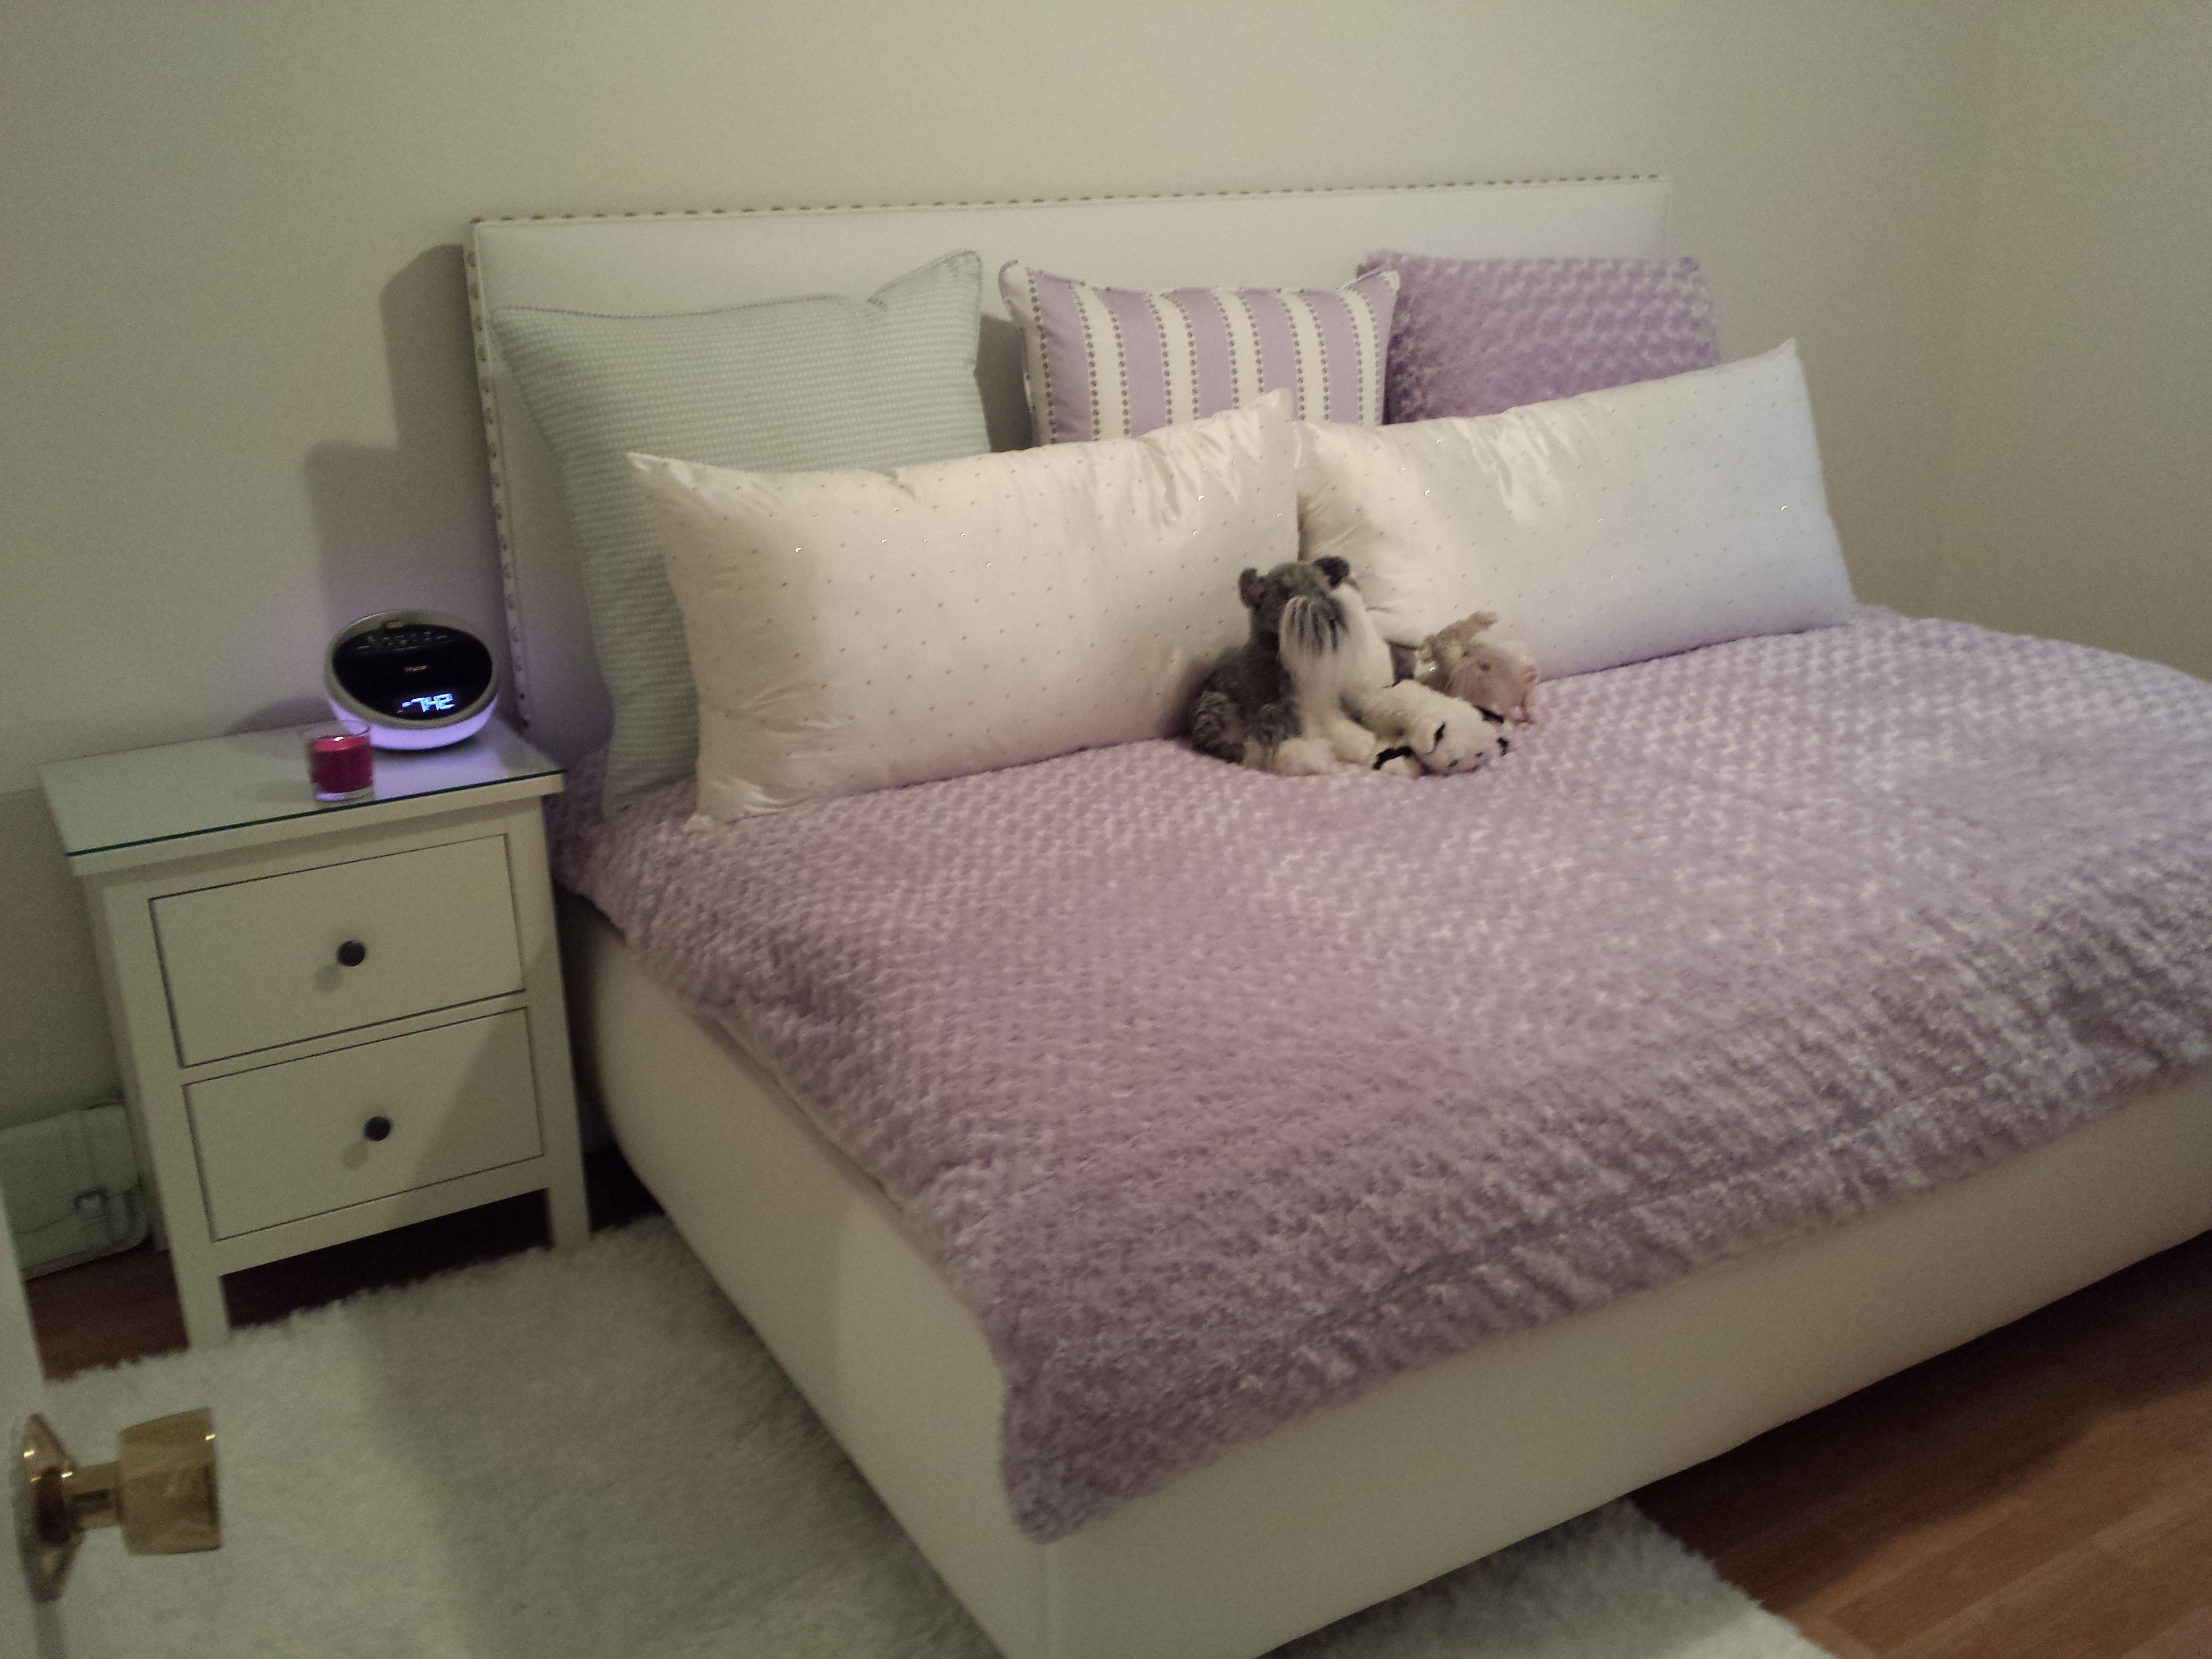 Double Sized Bed Turned Sideways In A Custom Daybed Frame Of White